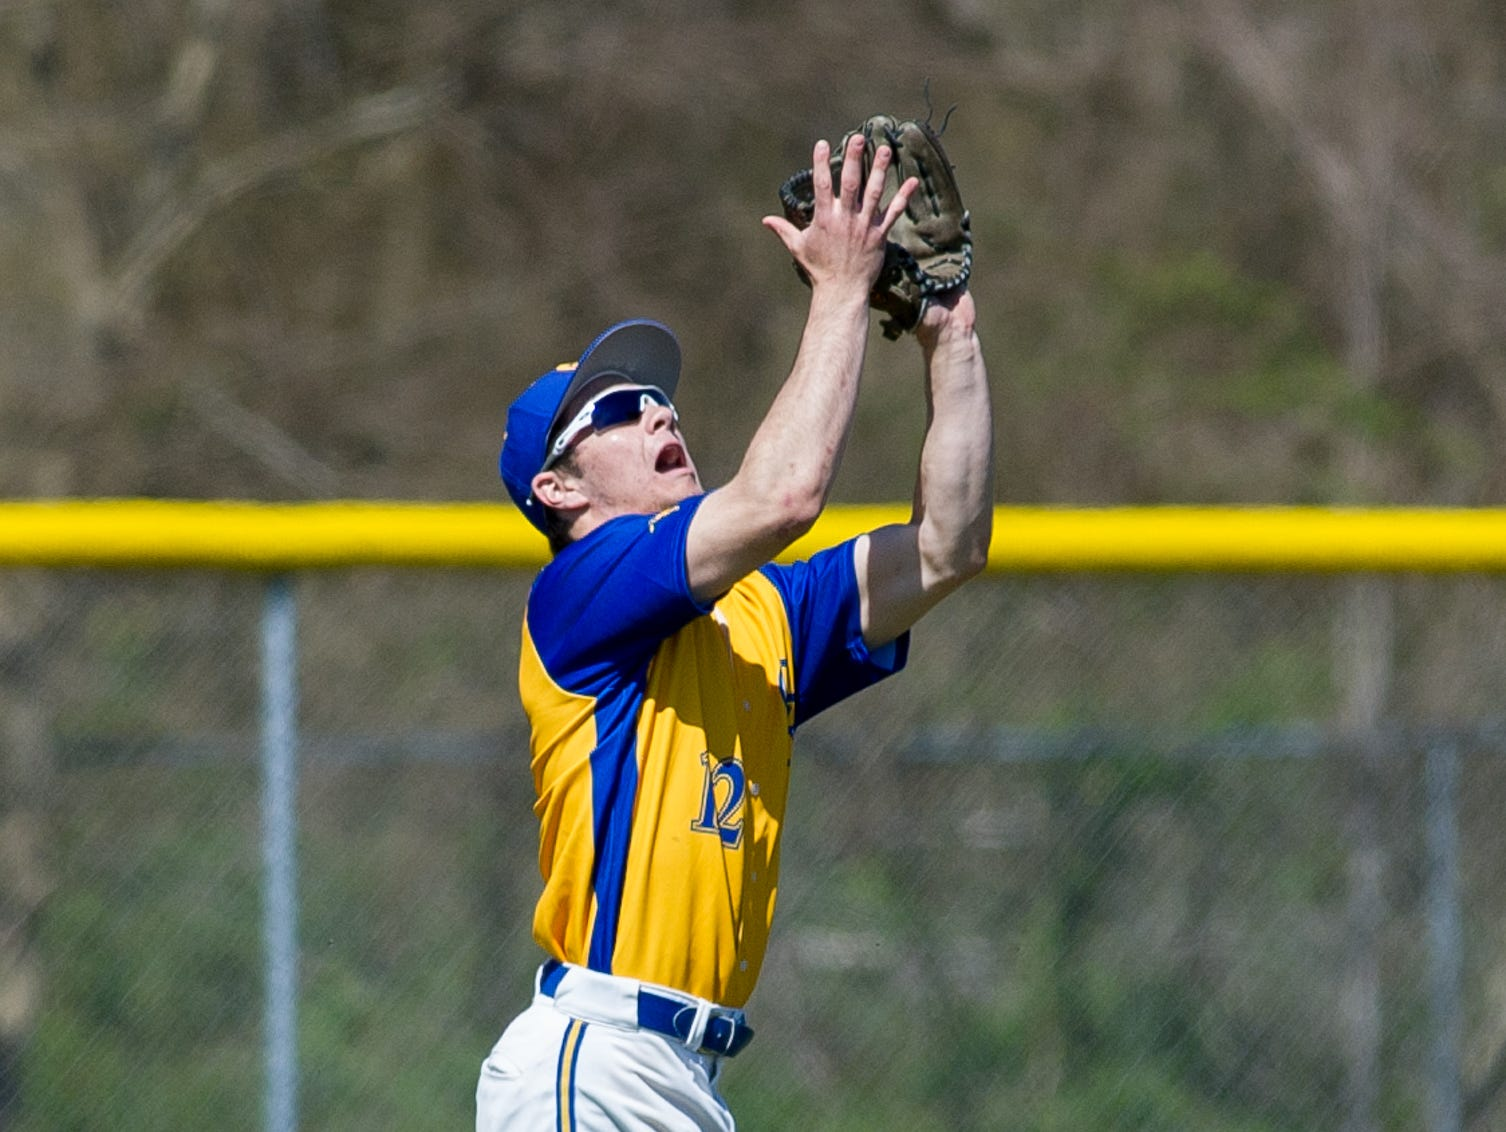 Caesar Rodney's Thomas Gallucci (12) catches a fly ball in the first inning against St. Marks.